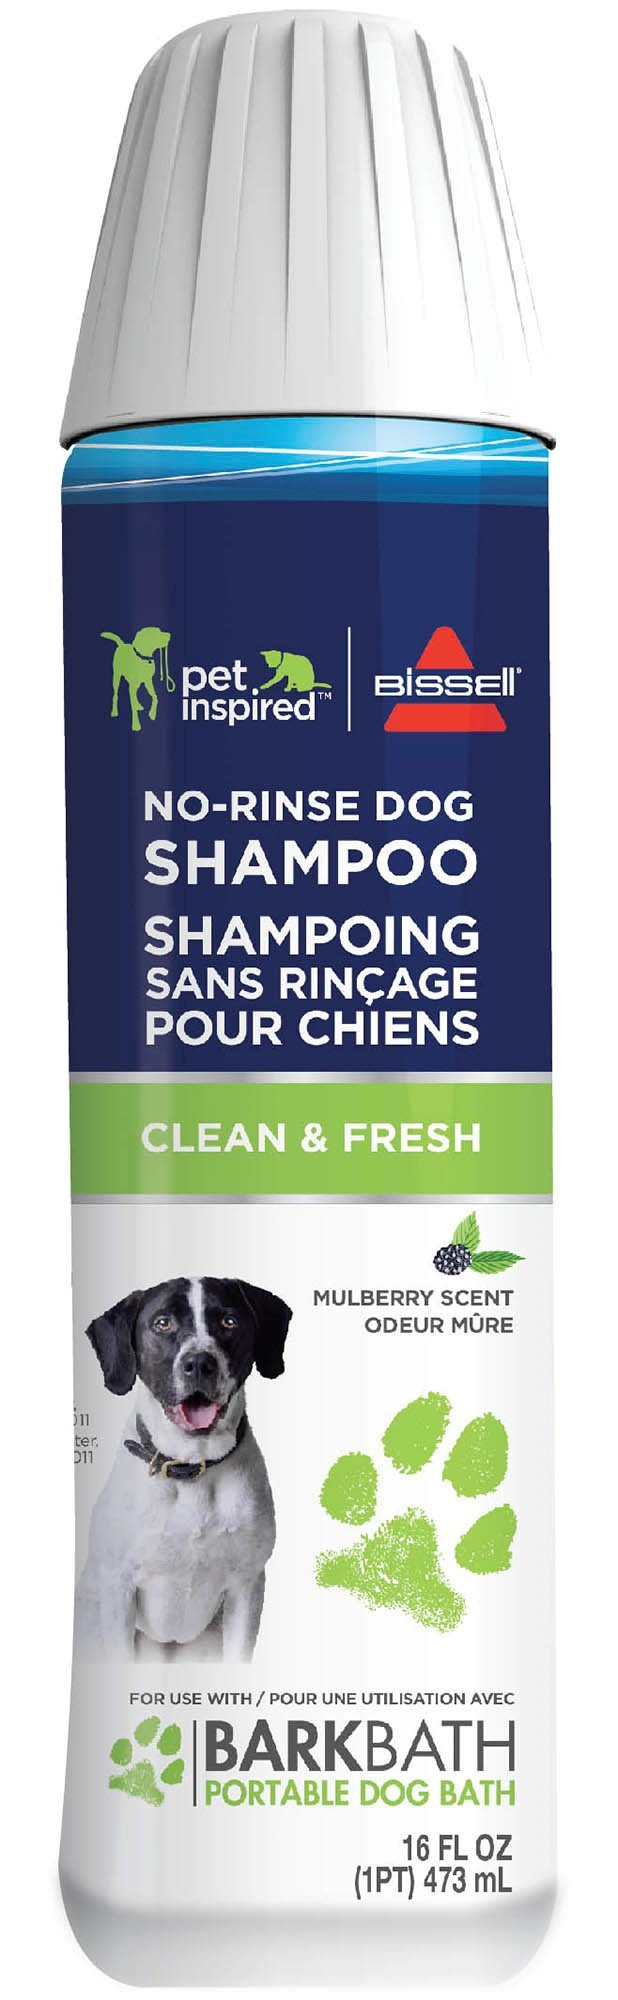 Bissell Clean & Fresh No Rinse Dog Shampoo (2 Pack), 2178A by Bissell (Image #1)